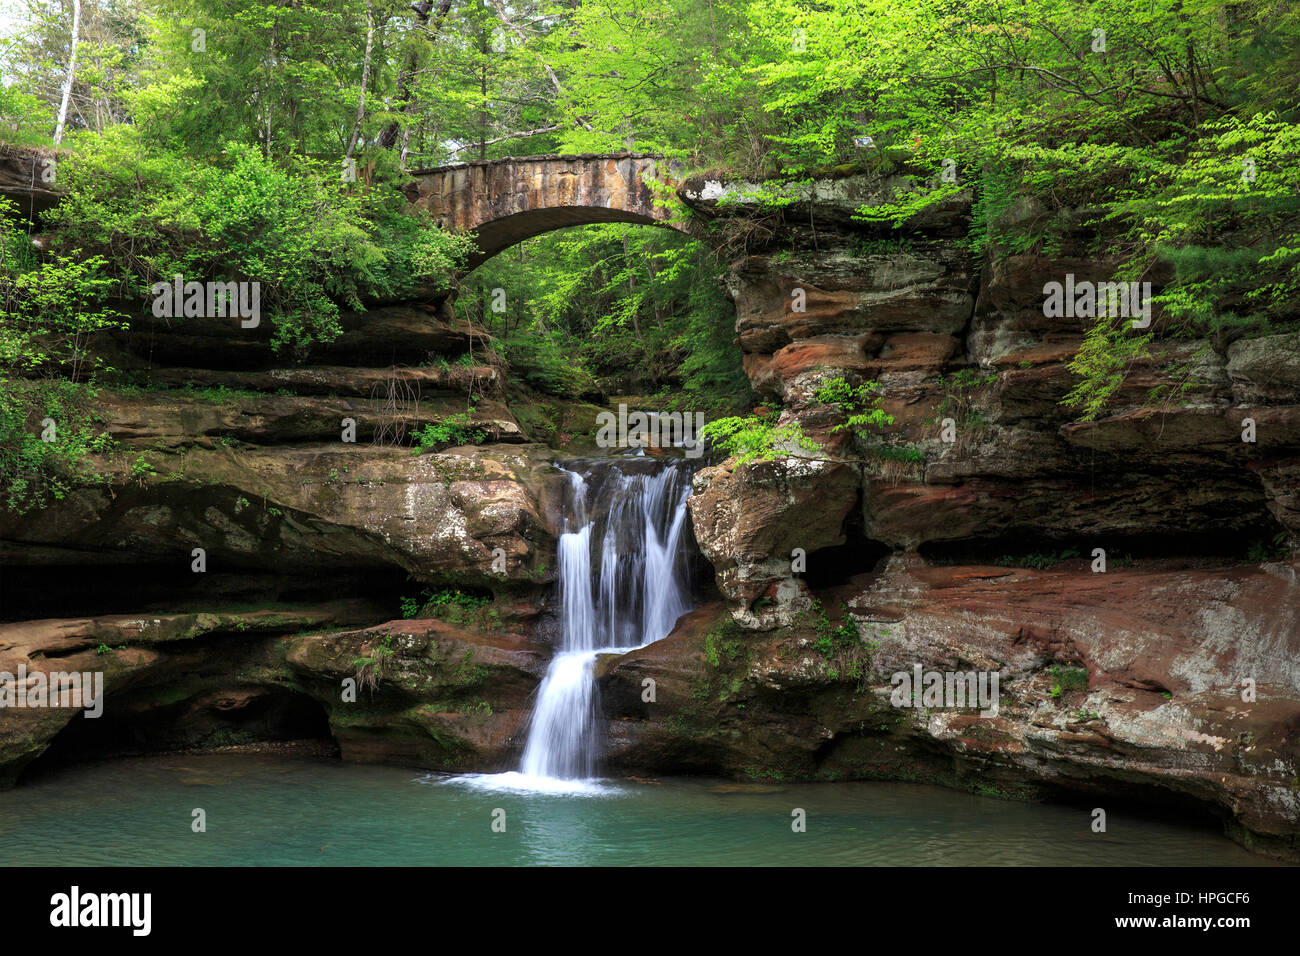 Upper Falls at Old Man's Cave, Hocking Hills State Park, Ohio, in the Spring - Stock Image